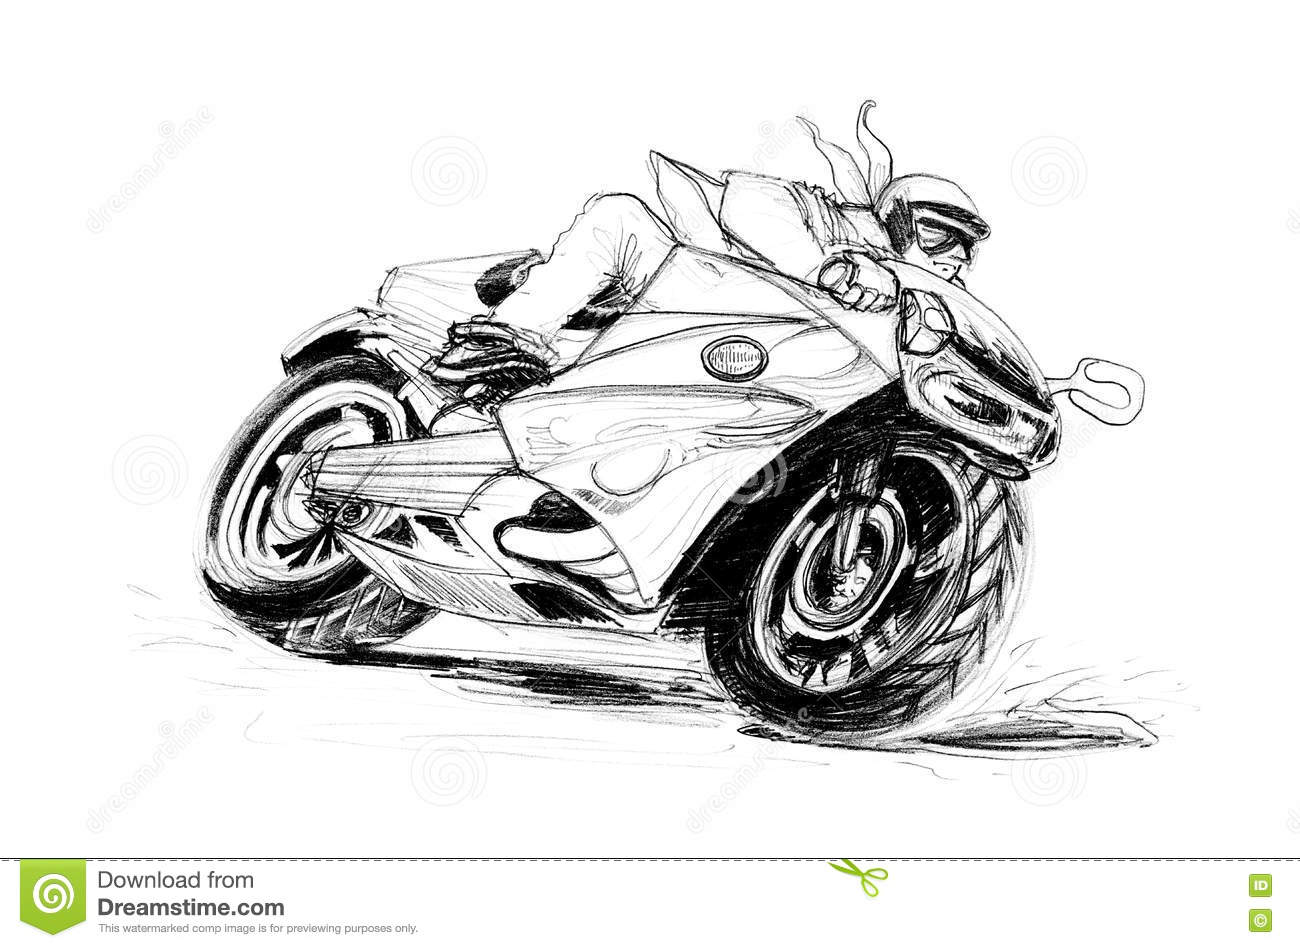 Big bike riding on the road curve cartoon pencil sketch free hand black and white color isolated background